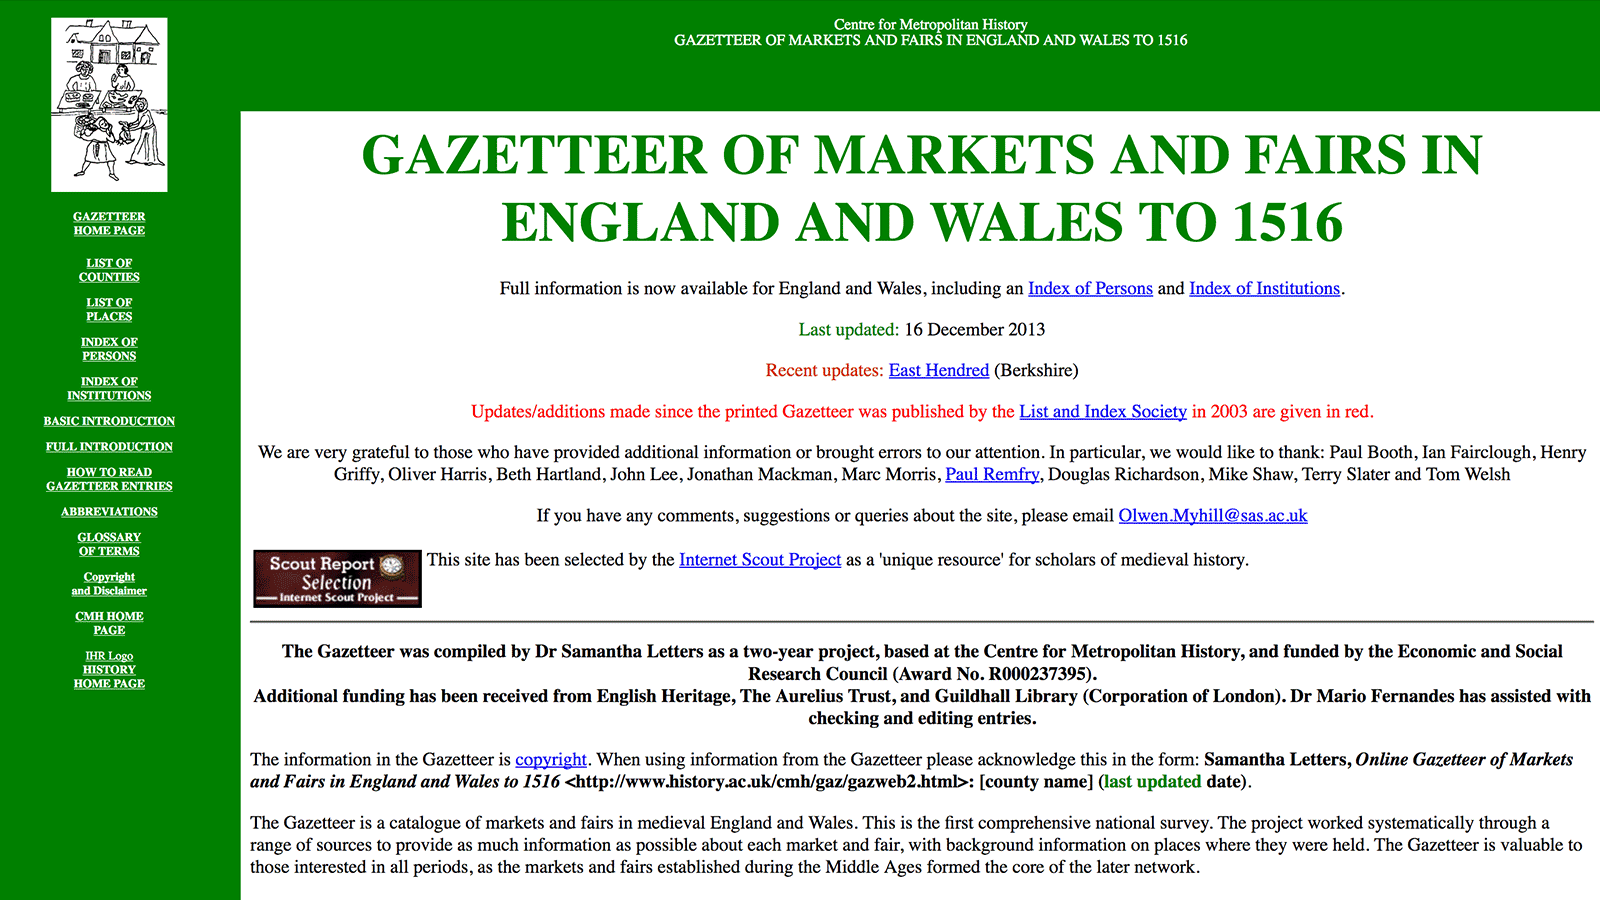 Gazetteer of Markets ad Fairs in England and Wales to 1516